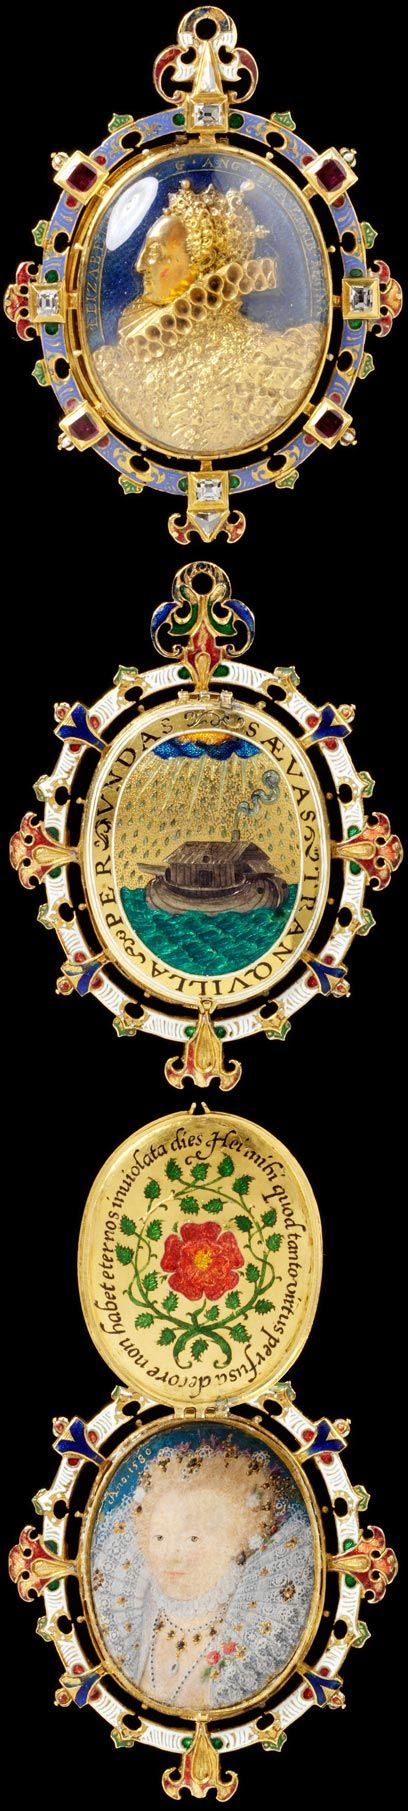 1595 Heneage Jewel (locket), also called 'The Armada Jewel': painting by Nicholas